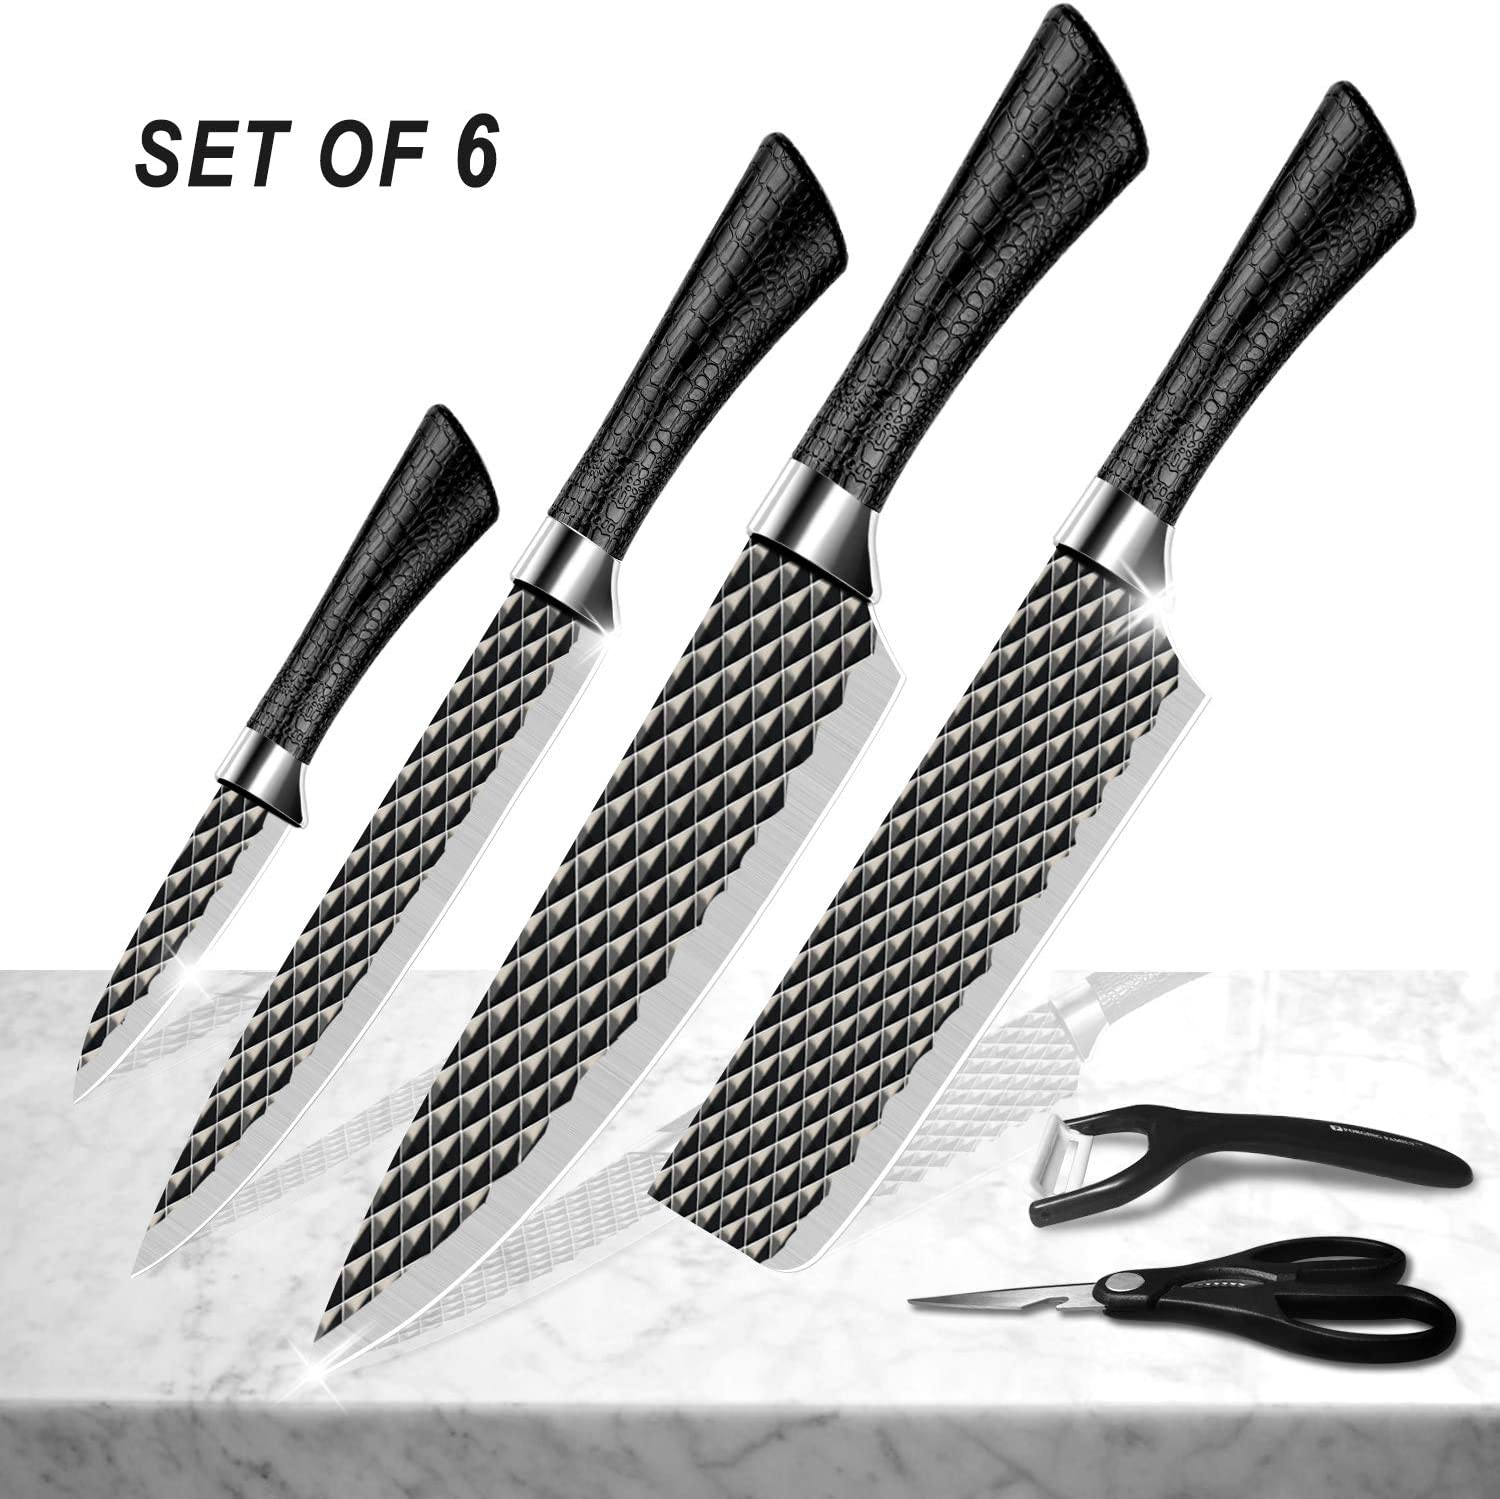 Alfheim Stainless Steel Six-Piece Kitchen Knives Set, Noble and Fashion FDA-grade Black Layer Diamond Pattern, Tight Grip and Comfortable Non-slip Hndle, Multifunctional Scissors and Peeler